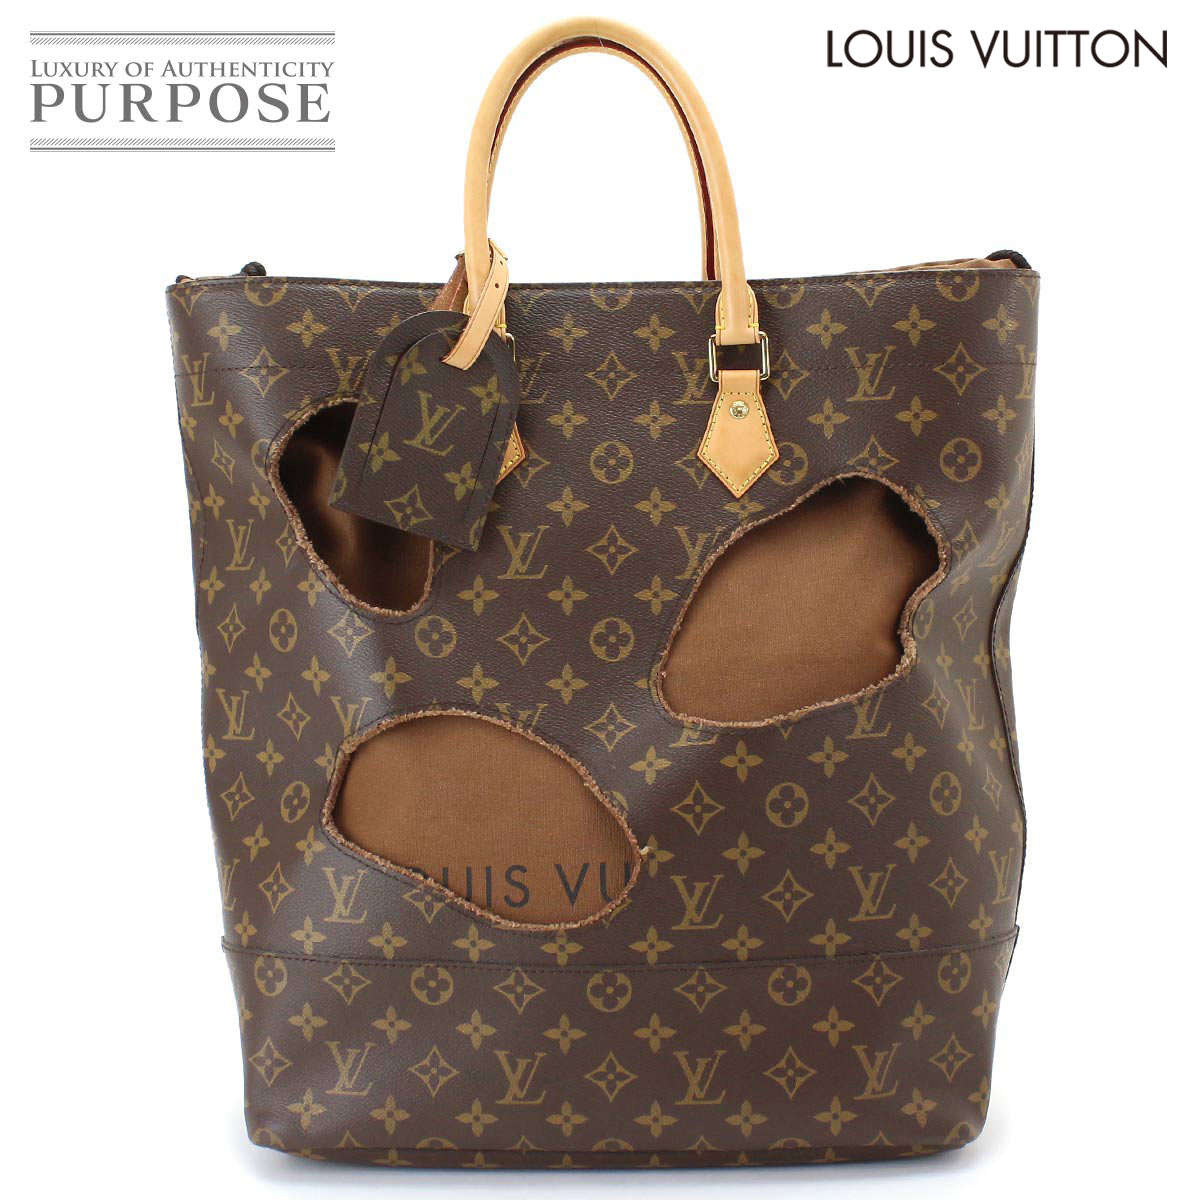 fb618ca97 Louis Vuitton LOUIS VUITTON monogram with halls tote bag M40279-limited  コムデギャルソン Rei Kawakubo [used] brand